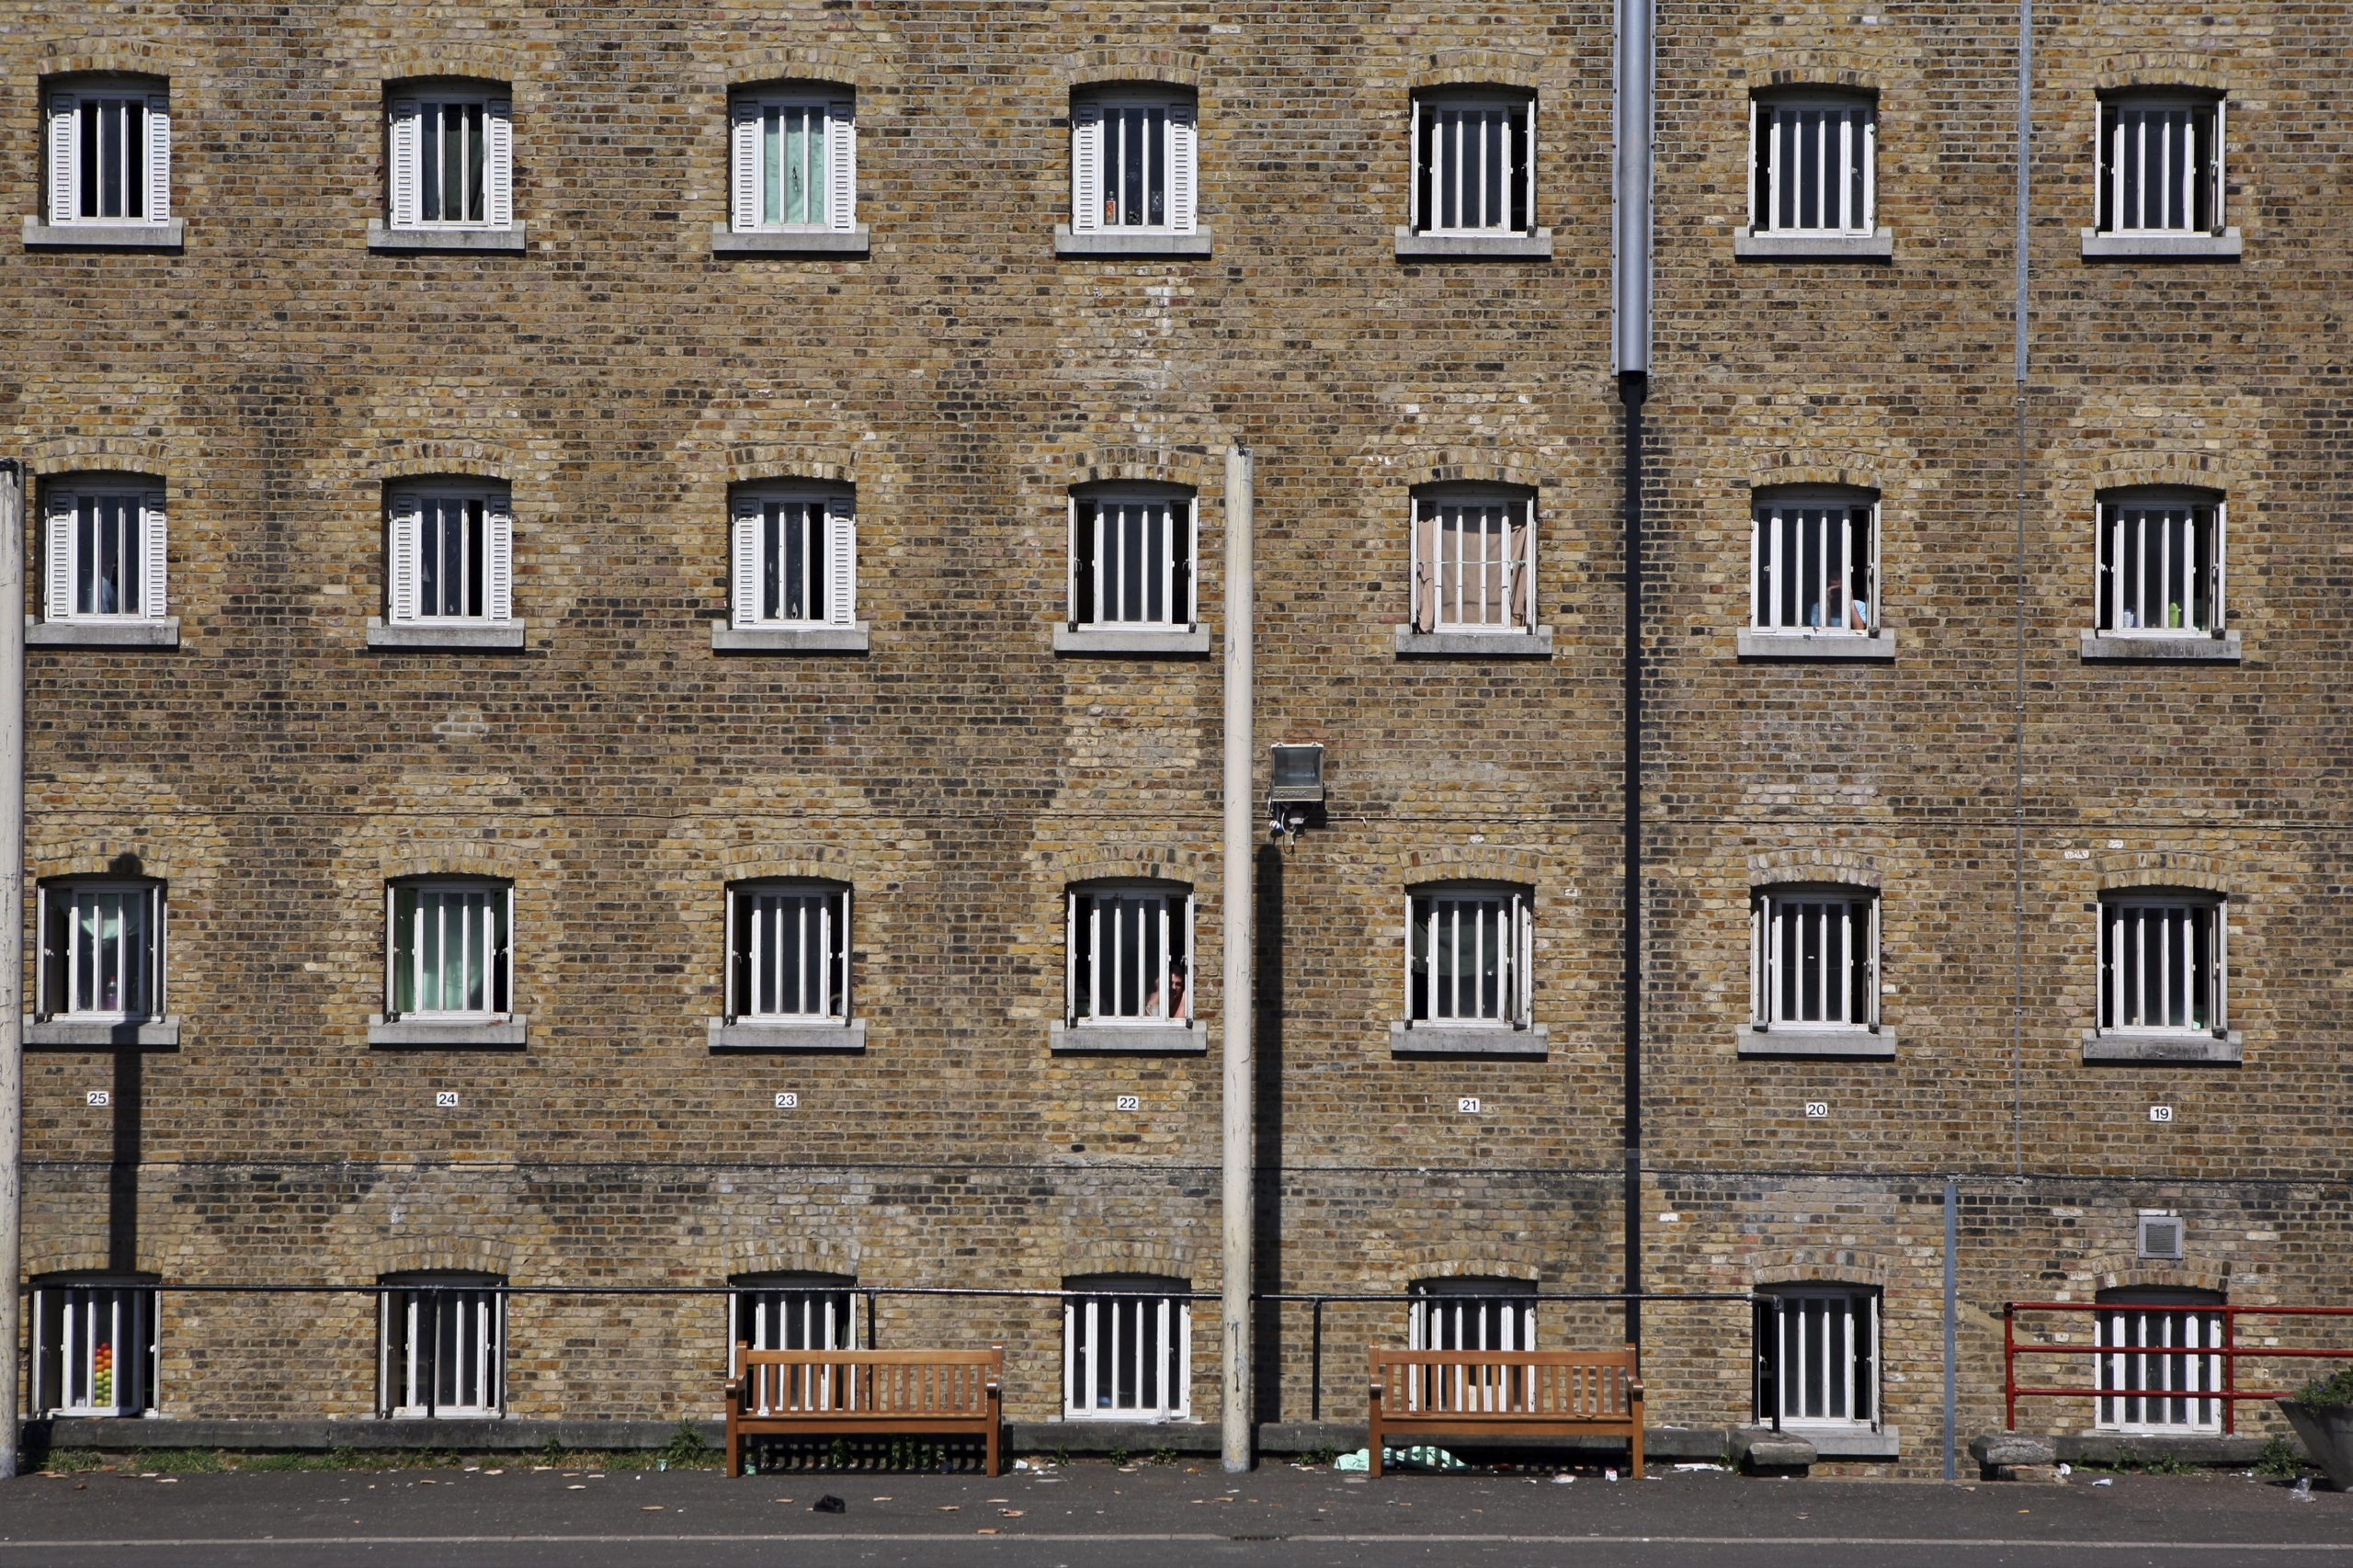 A view of D wing from the exercise yard at Wandsworth Prison. It has a capacity of 1456 prisoners. P{ic by Andrew Aitchison www.prisonimage.org